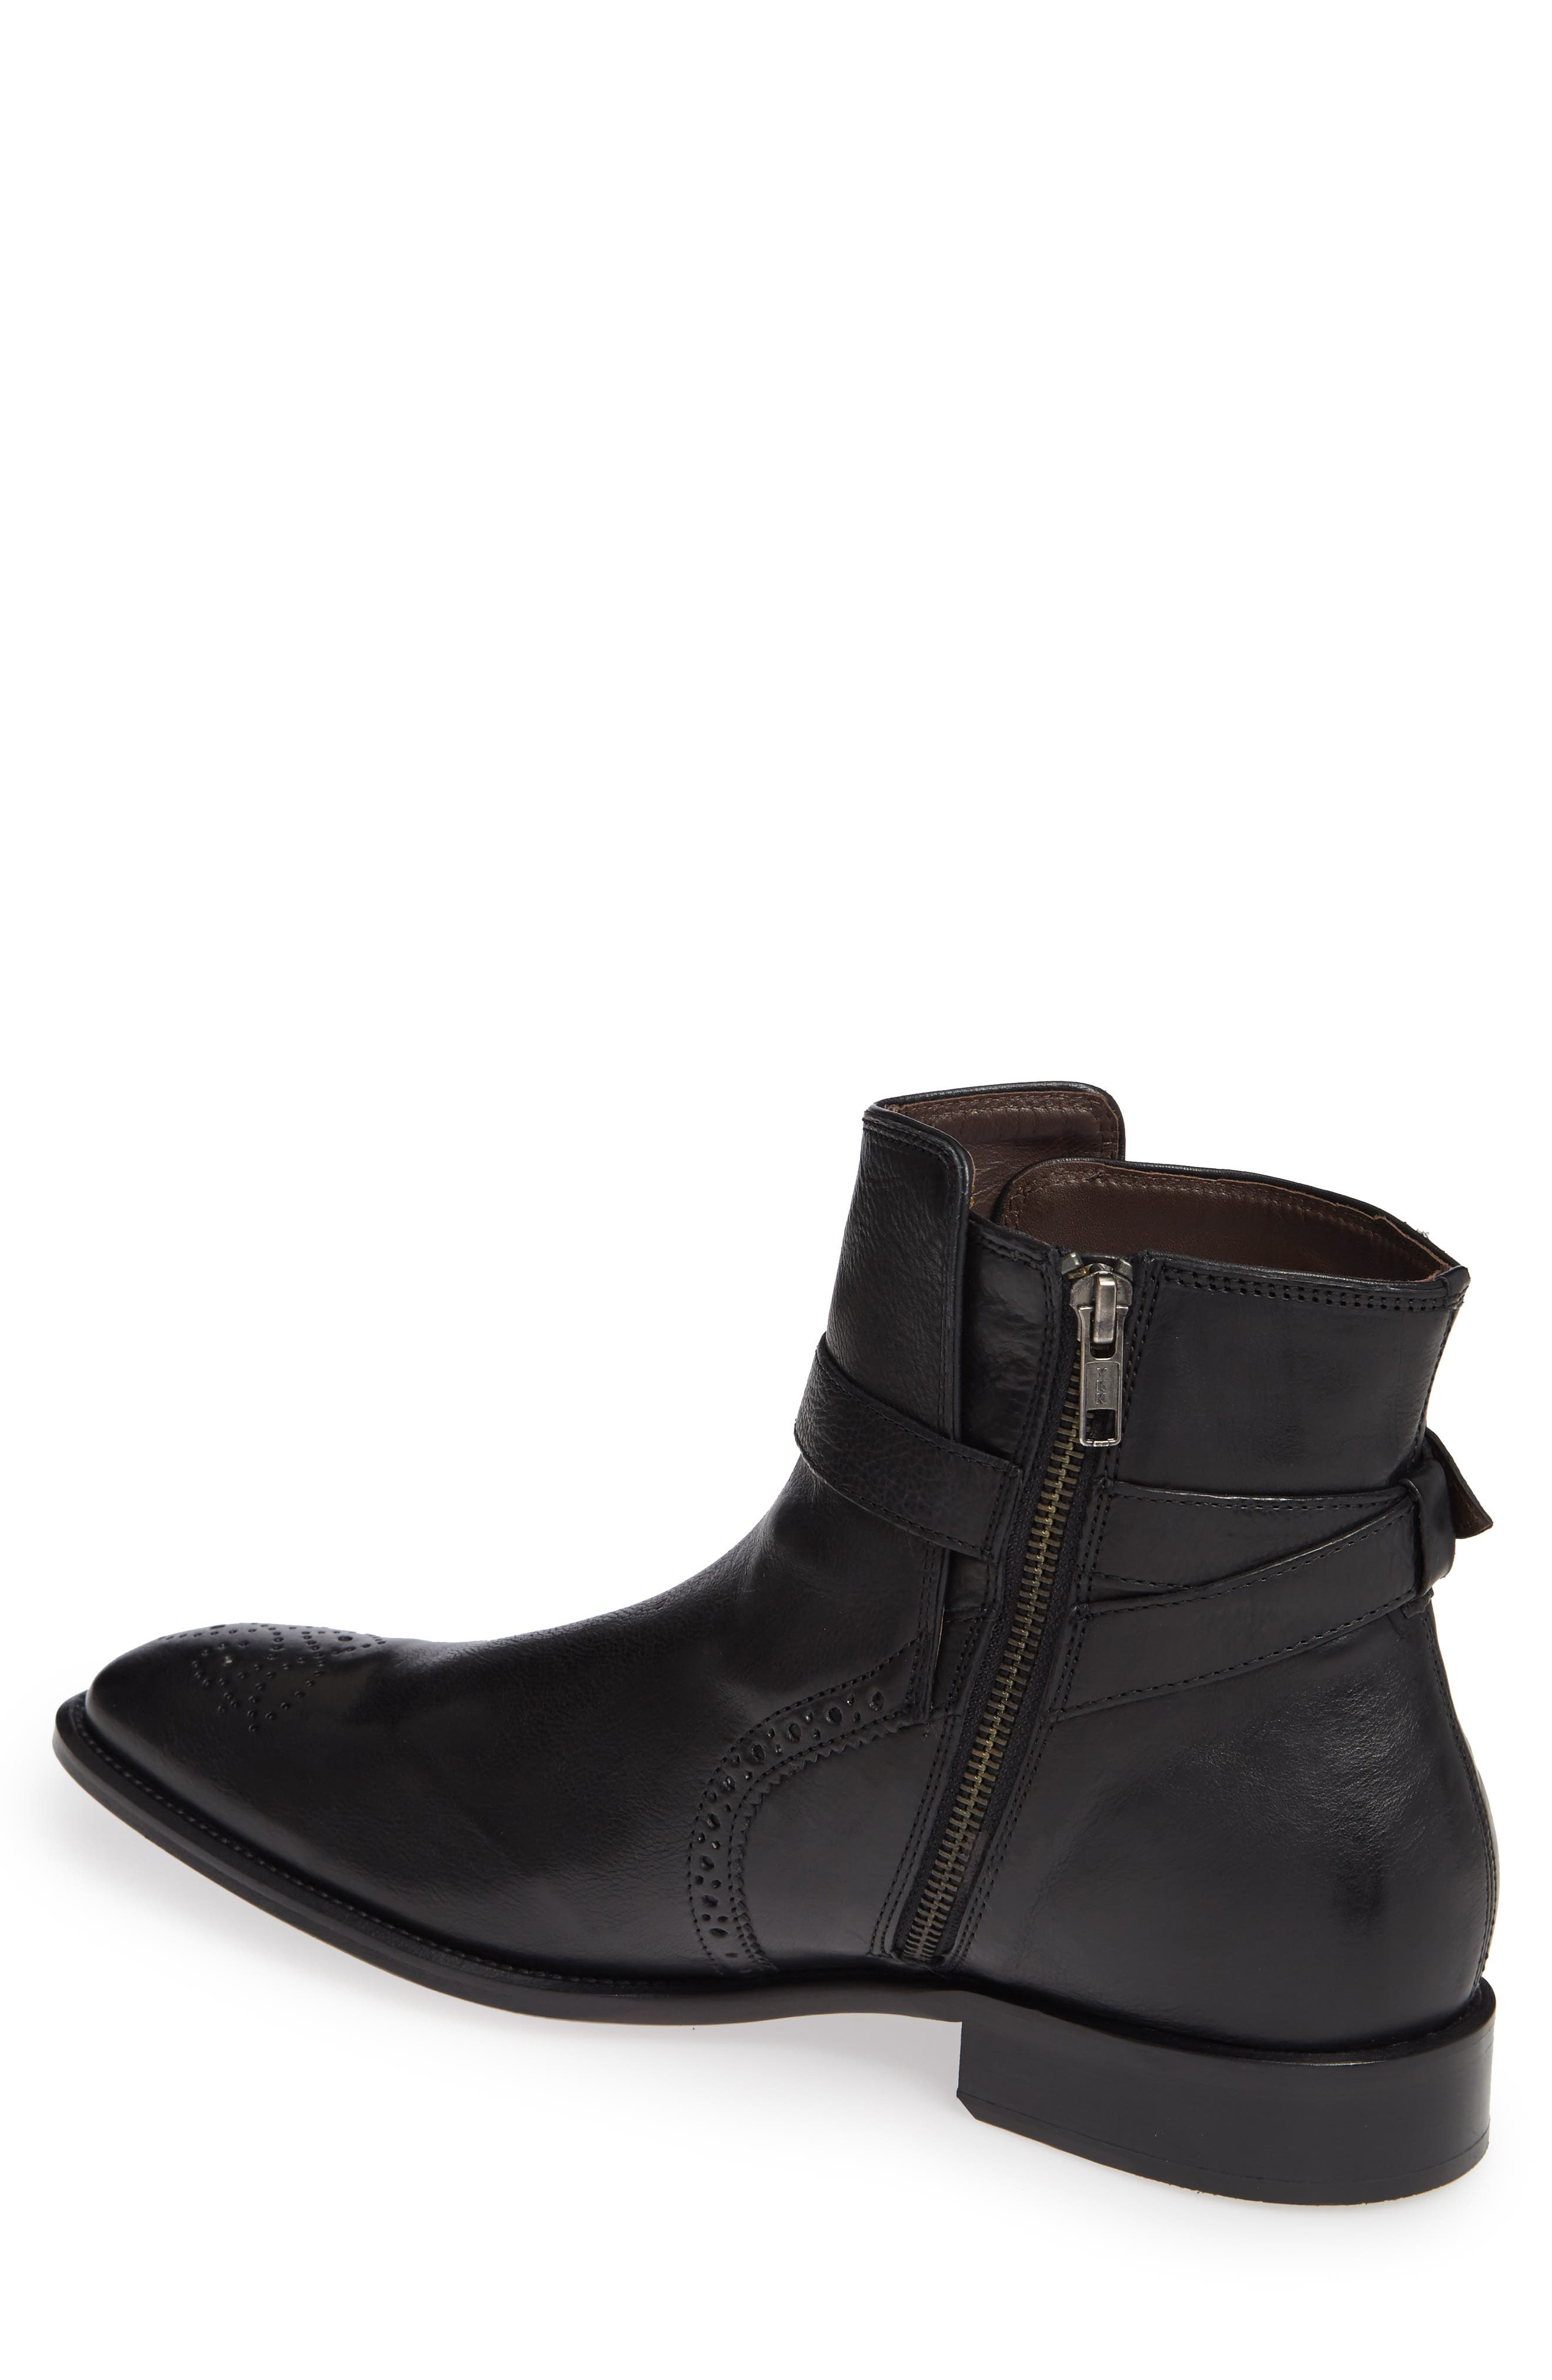 Maxwell Zip Boot,                             Alternate thumbnail 2, color,                             BLACK LEATHER